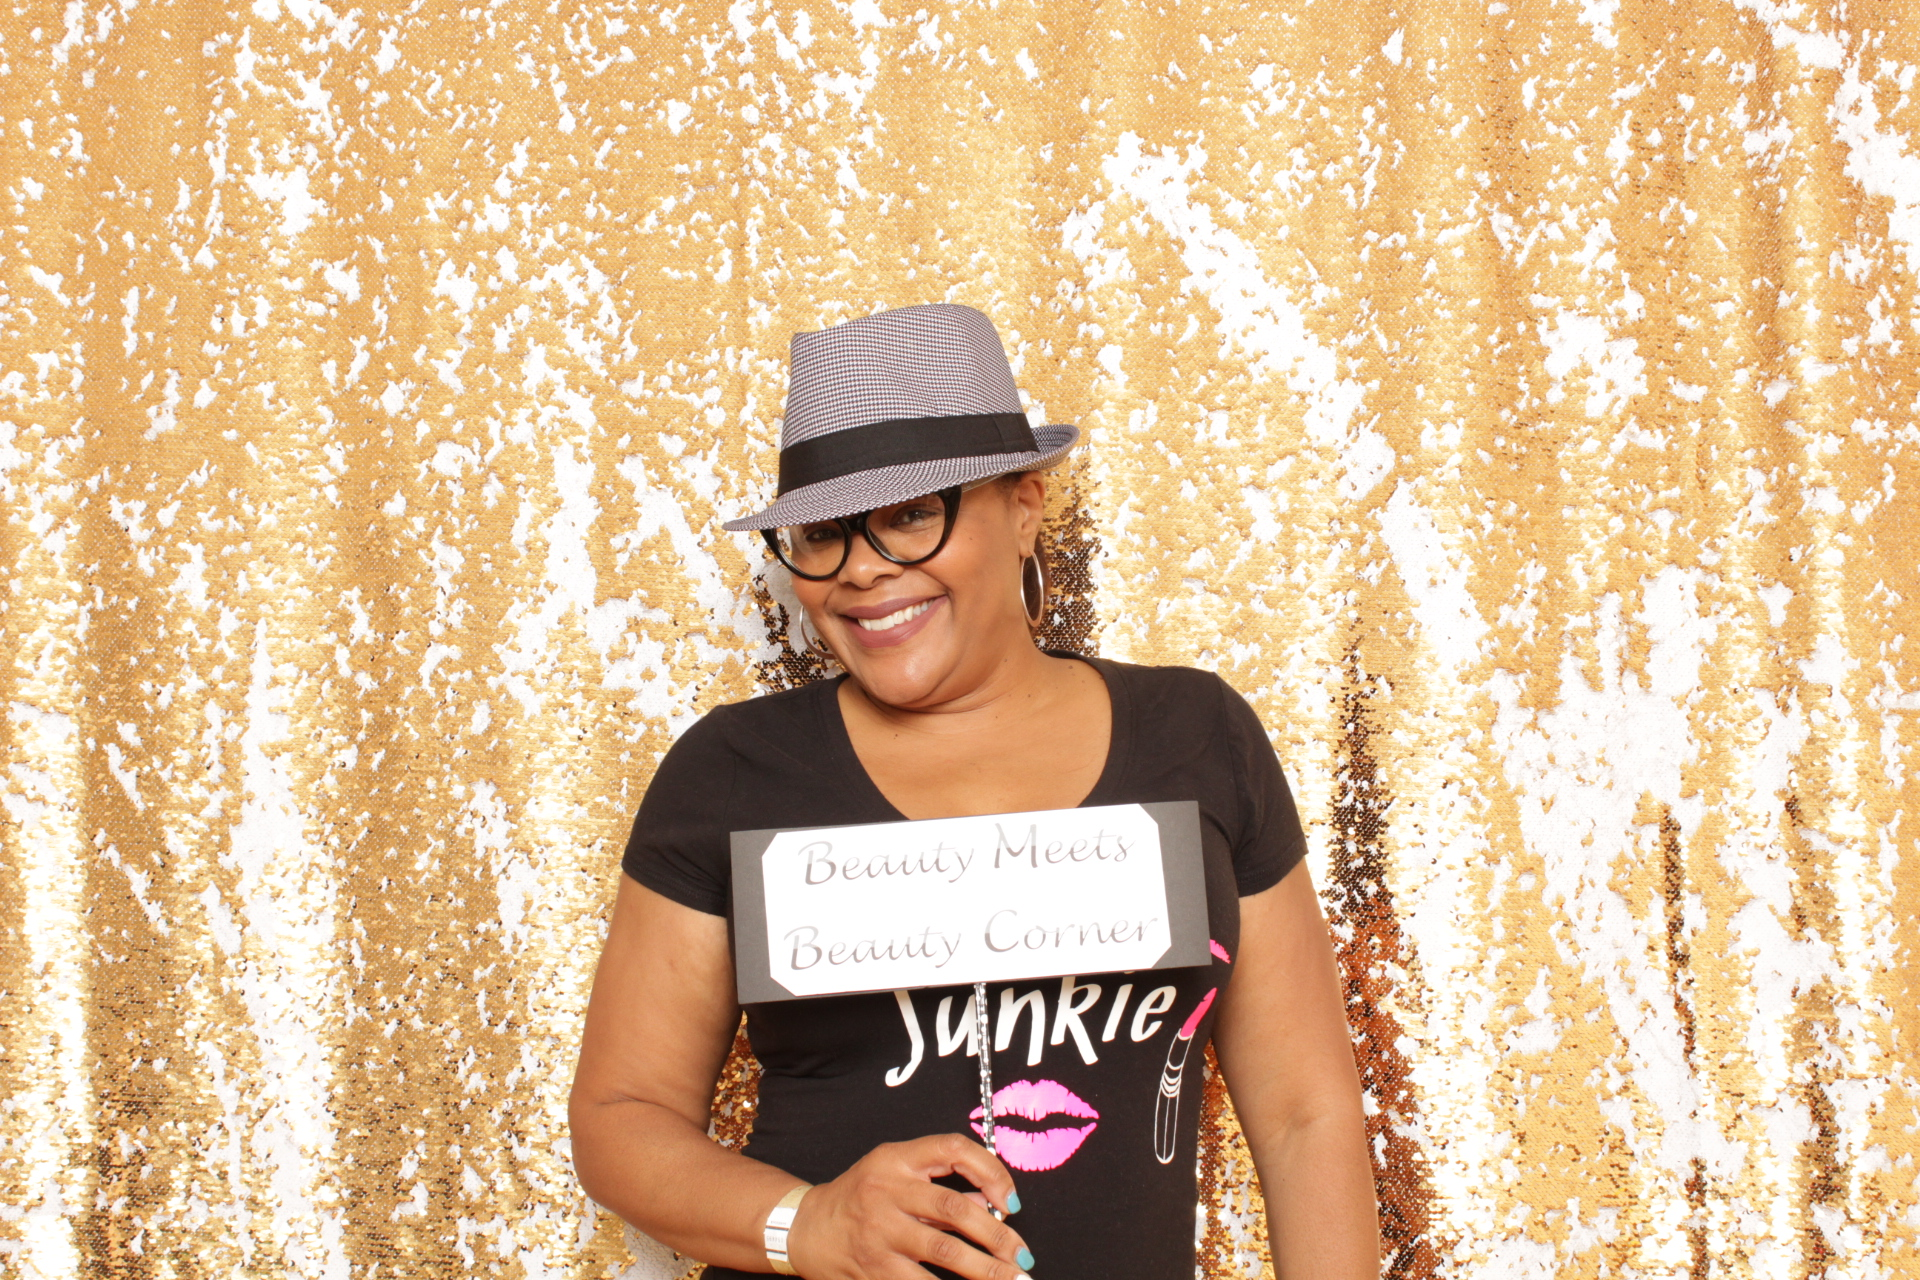 photo booth rental for parties, weddings and events